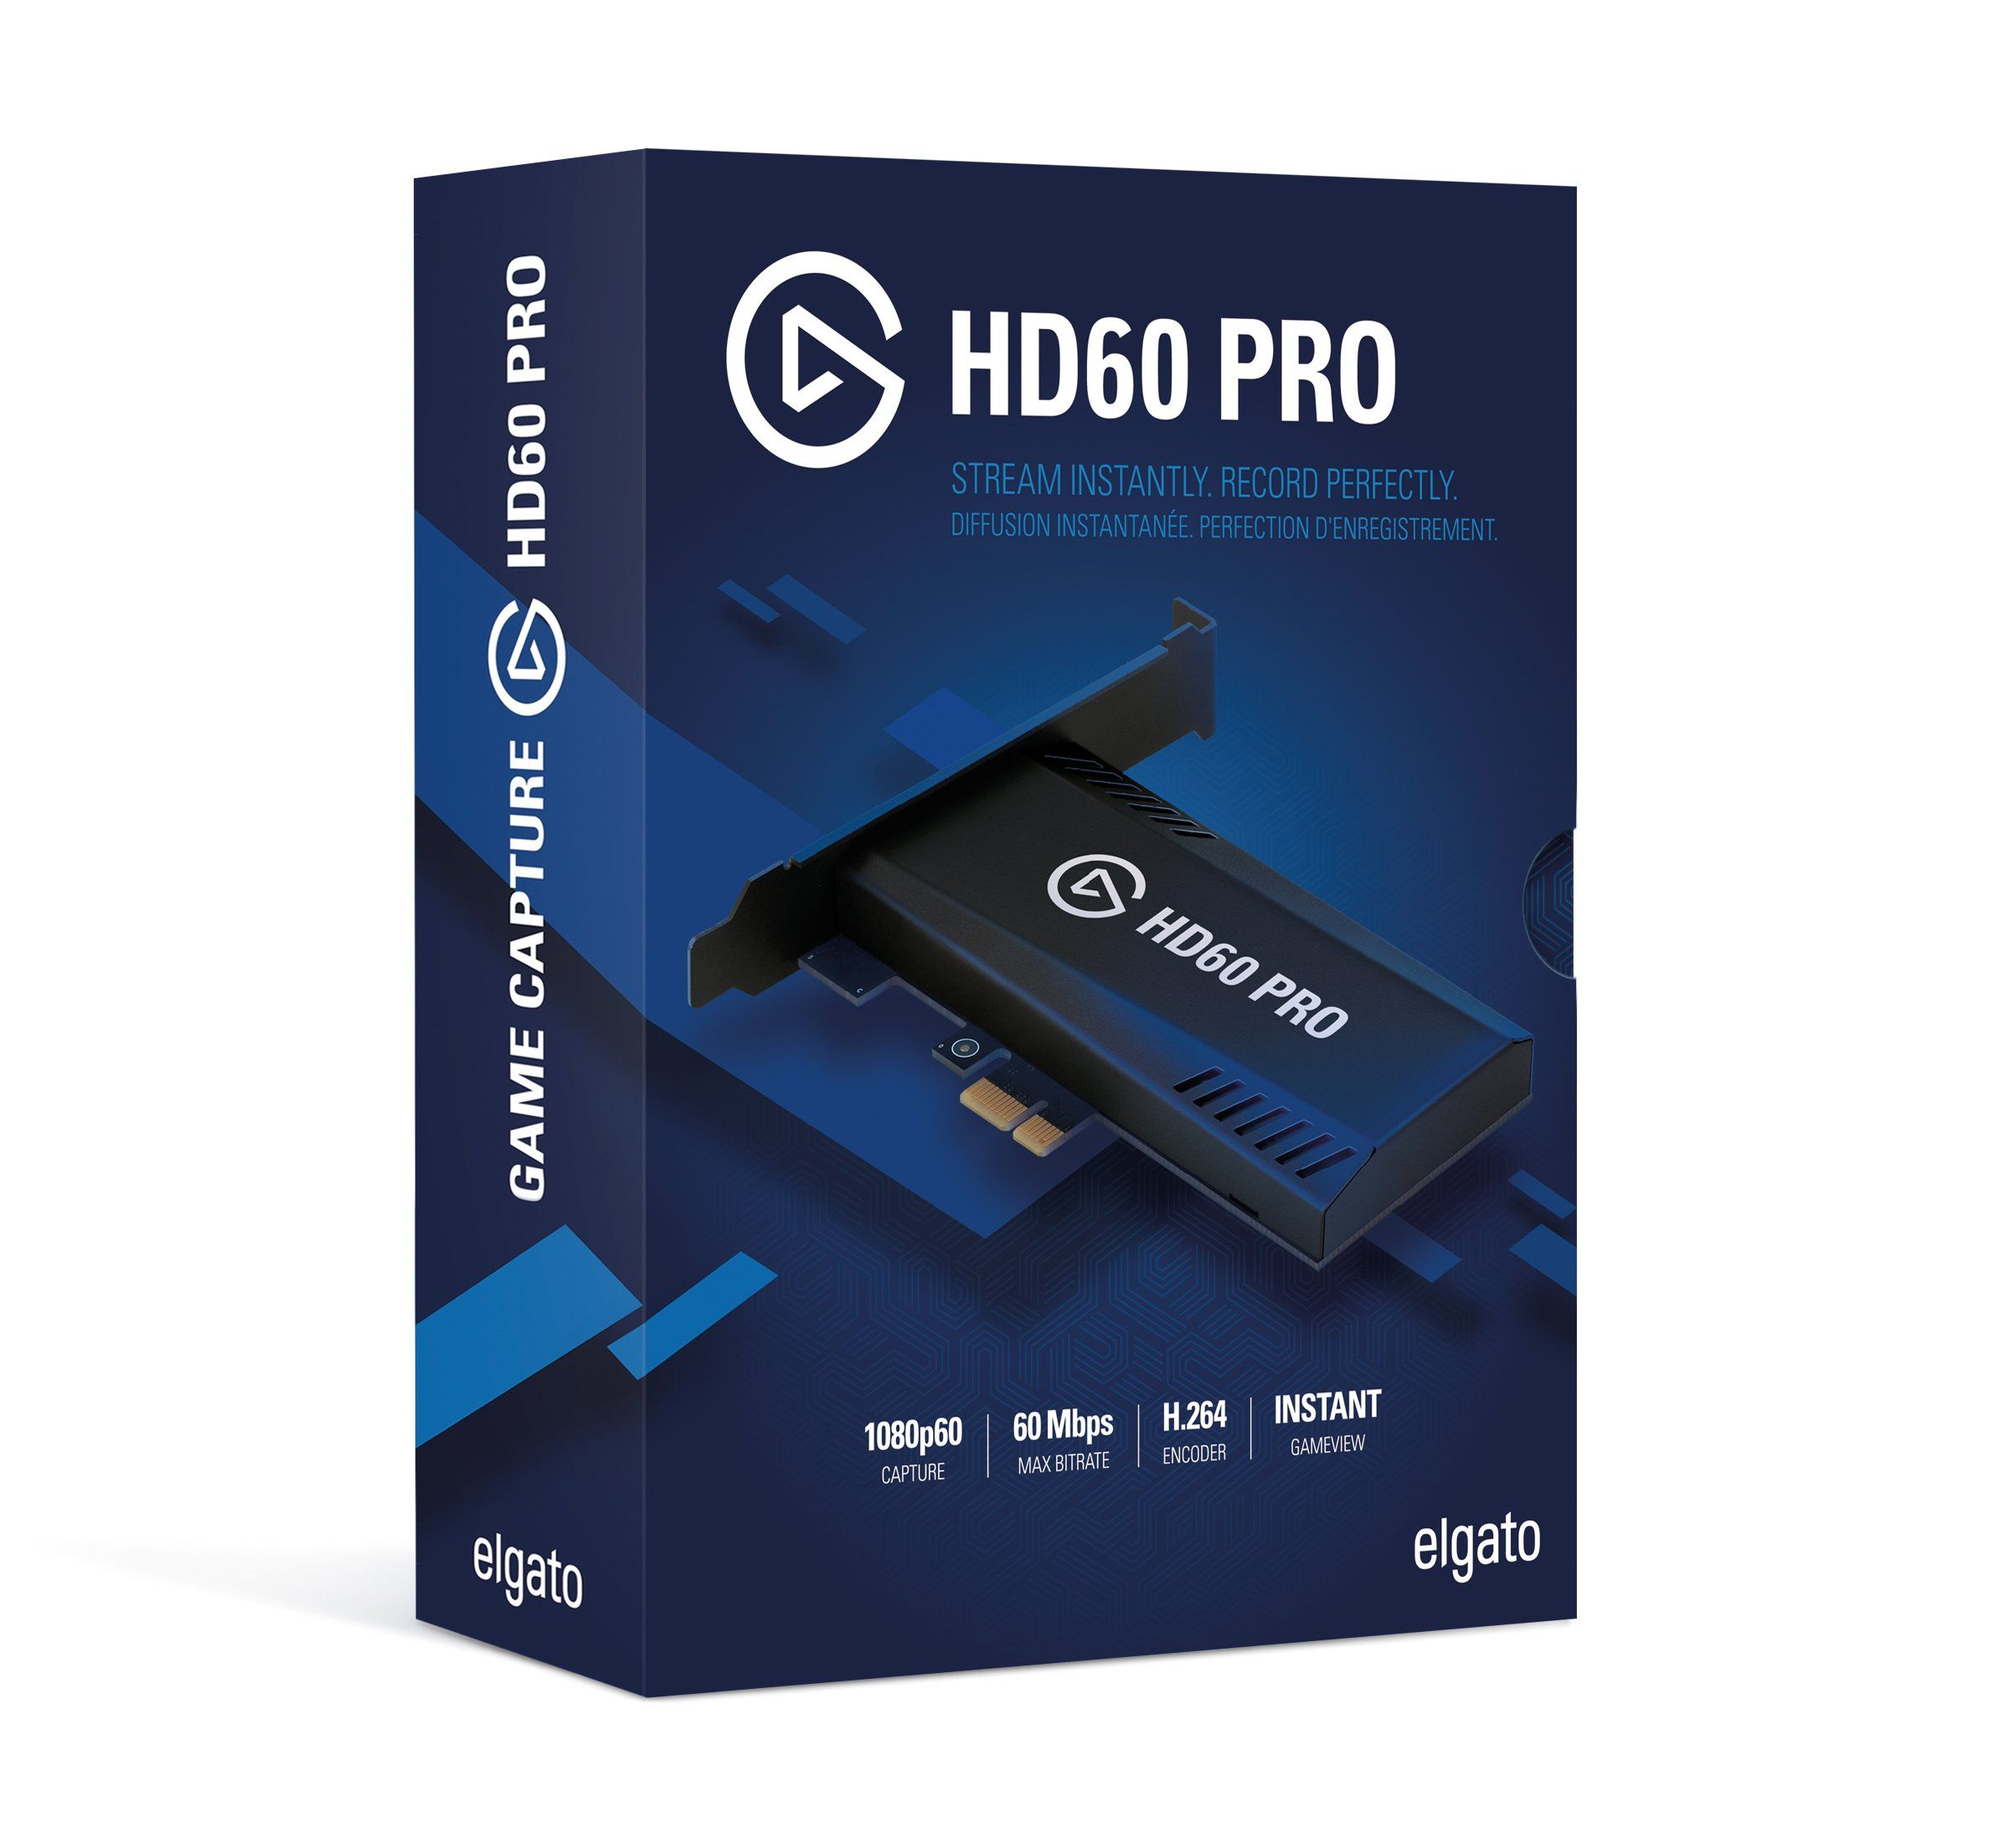 Stream and record in 1080p60 superior low lat... Elgato Game Capture HD60 Pro